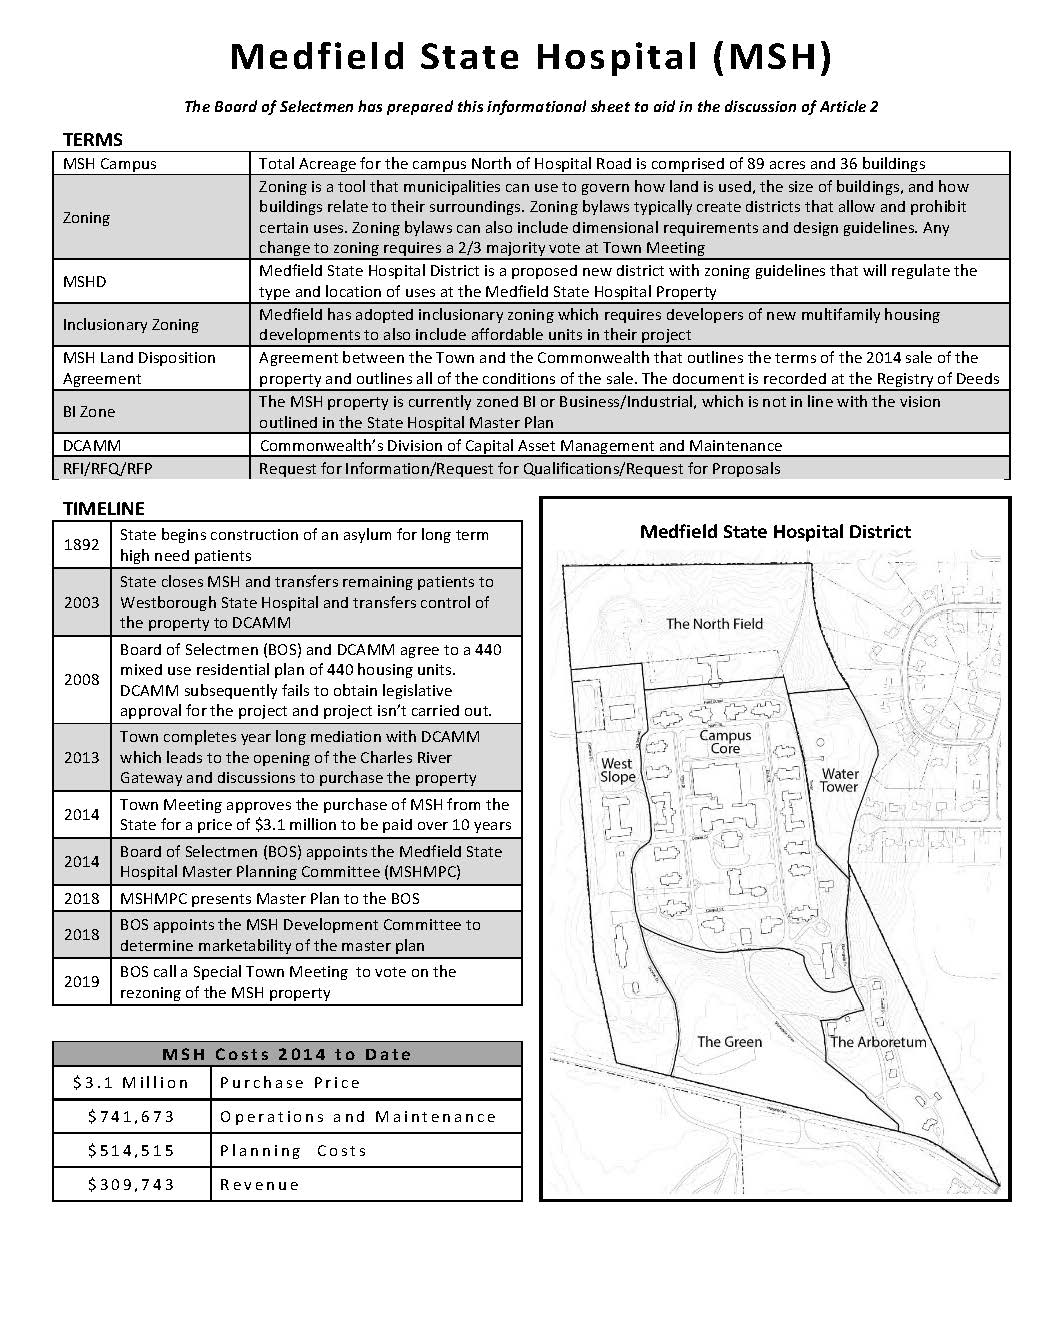 Medfield State Hospital (MSH) The Board of Selectmen has prepared this informational sheet to aid in the discussion of Article 2 TERMS MSH Campus Total Acreage for the campus North of Hospital Road is comprised of 89 acres and 36 buildings Zoning Zoning is a tool that municipalities can use to govern how land is used, the size of buildings, and how buildings relate to their surroundings. Zoning bylaws typically create districts that allow and prohibit certain uses. Zoning bylaws can also include dimensional requirements and design guidelines. Any change to zoning requires a 2/3 majority vote at Town Meeting MSHD Medfield State Hospital District is a proposed new district with zoning guidelines that will regulate the type and location of uses at the Medfield State Hospital Property Inclusionary Zoning Medfield has adopted inclusionary zoning which requires developers of new multifamily housing developments to also include affordable units in their project MSH Land Disposition Agreement Agreement between the Town and the Commonwealth that outlines the terms of the 2014 sale of the property and outlines all of the conditions of the sale. The document is recorded at the Registry of Deeds BI Zone The MSH property is currently zoned BI or Business/Industrial, which is not in line with the vision outlined in the State Hospital Master Plan DCAMM Commonwealth's Division of Capital Asset Management and Maintenance RFI/RFQ/RFP Request for Information/Request for Qualifications/Request for Proposals TIMELINE 1892 State begins construction of an asylum for long term high need patients 2003 State closes MSH and transfers remaining patients to Westborough State Hospital and transfers control of the property to DCAMM 2008 Board of Selectmen (BOS) and DCAMM agree to a 440 mixed use residential plan of 440 housing units. DCAMM subsequently fails to obtain legislative approval for the project and project isn't carried out. 2013 Town completes year long mediation with DCAMM which leads